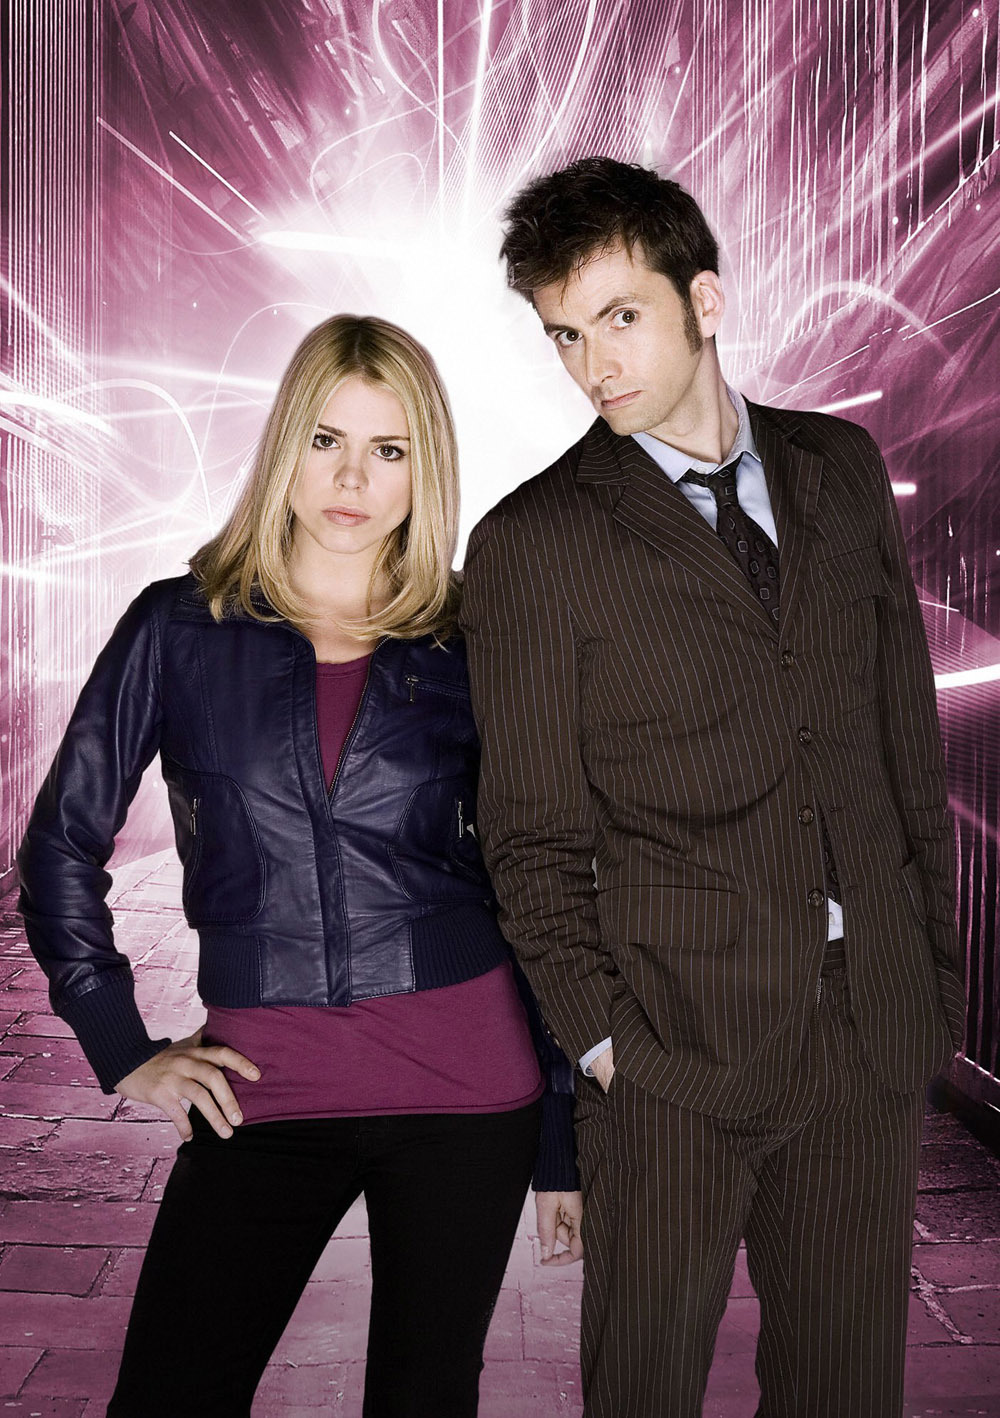 Rose Tyler david tennant HD Wallpaper